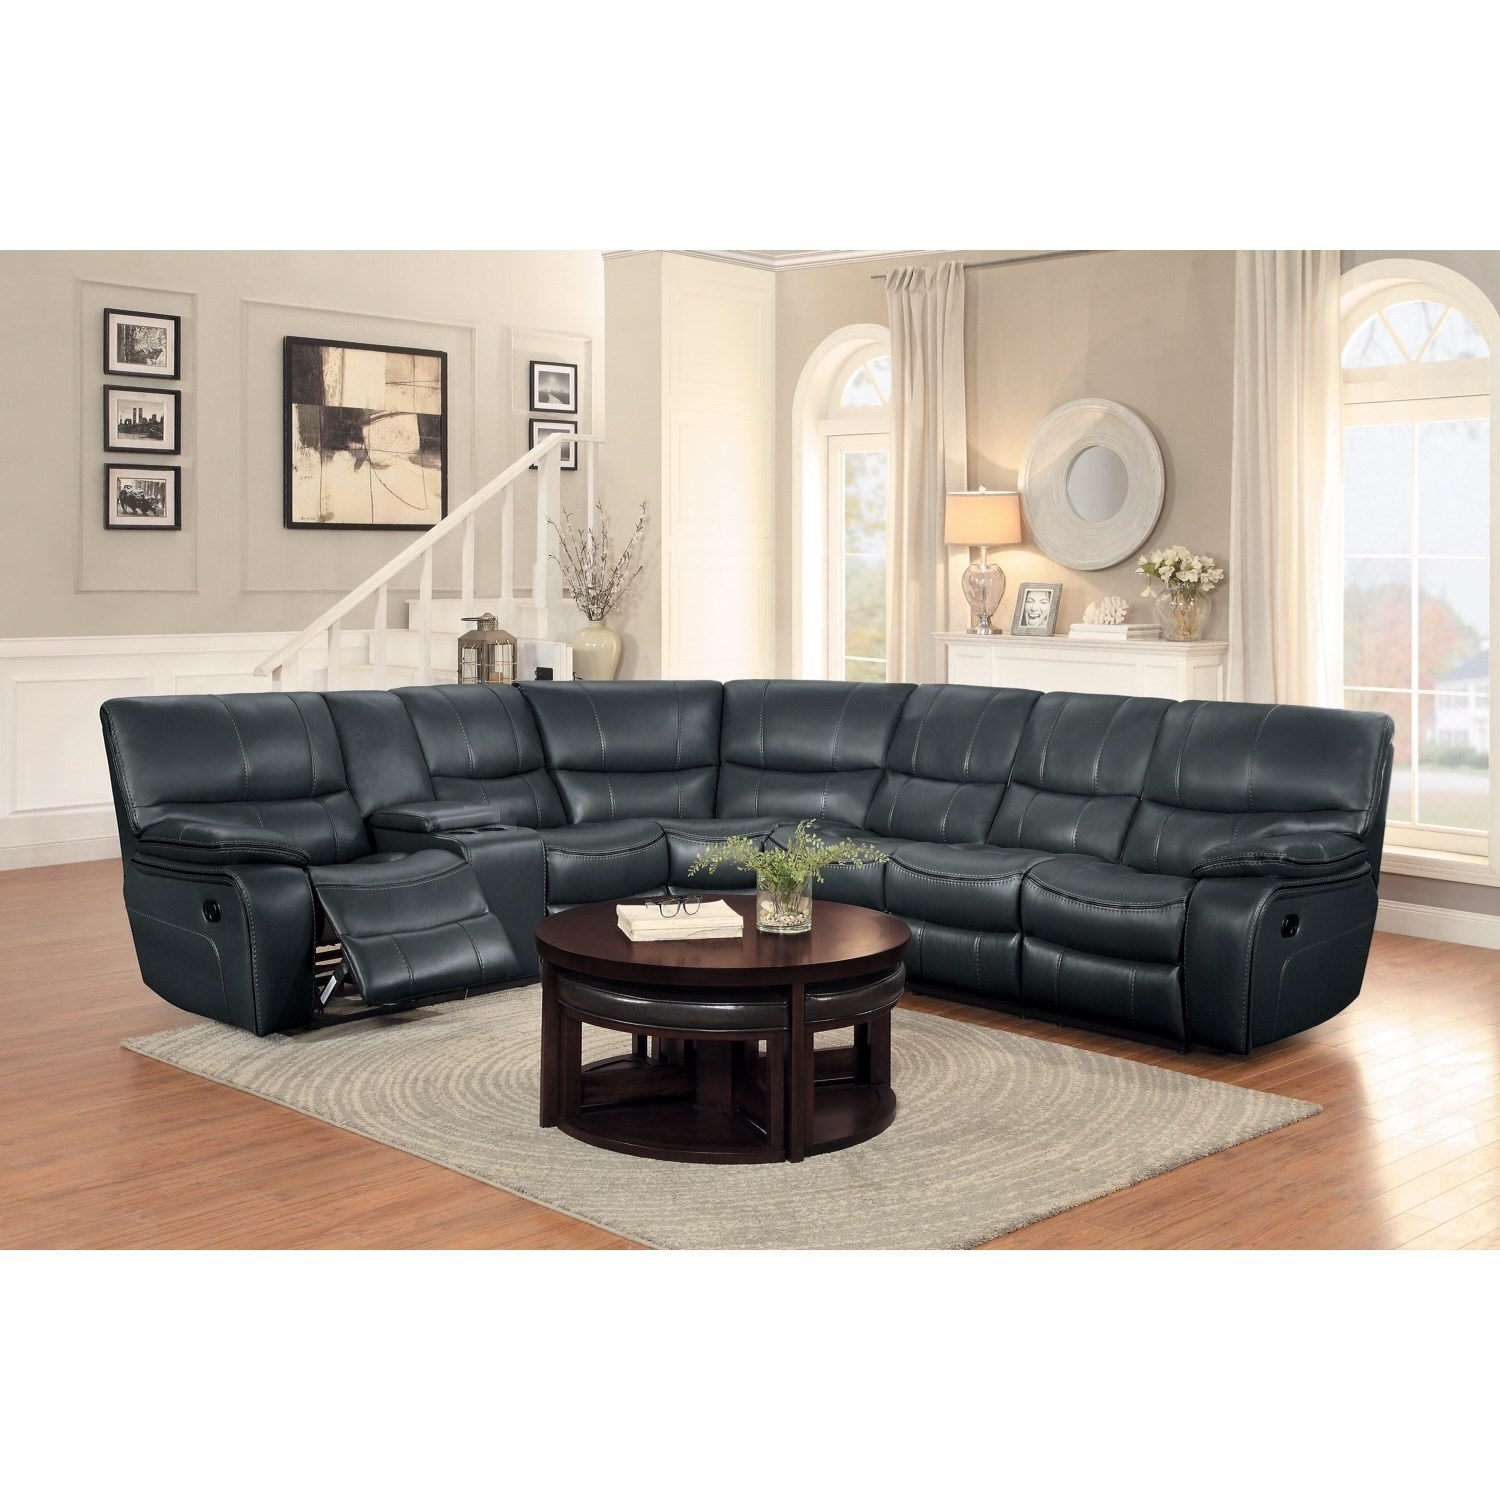 Homelegance Pecos Casual Sectional Sofa With Console And Cupholders